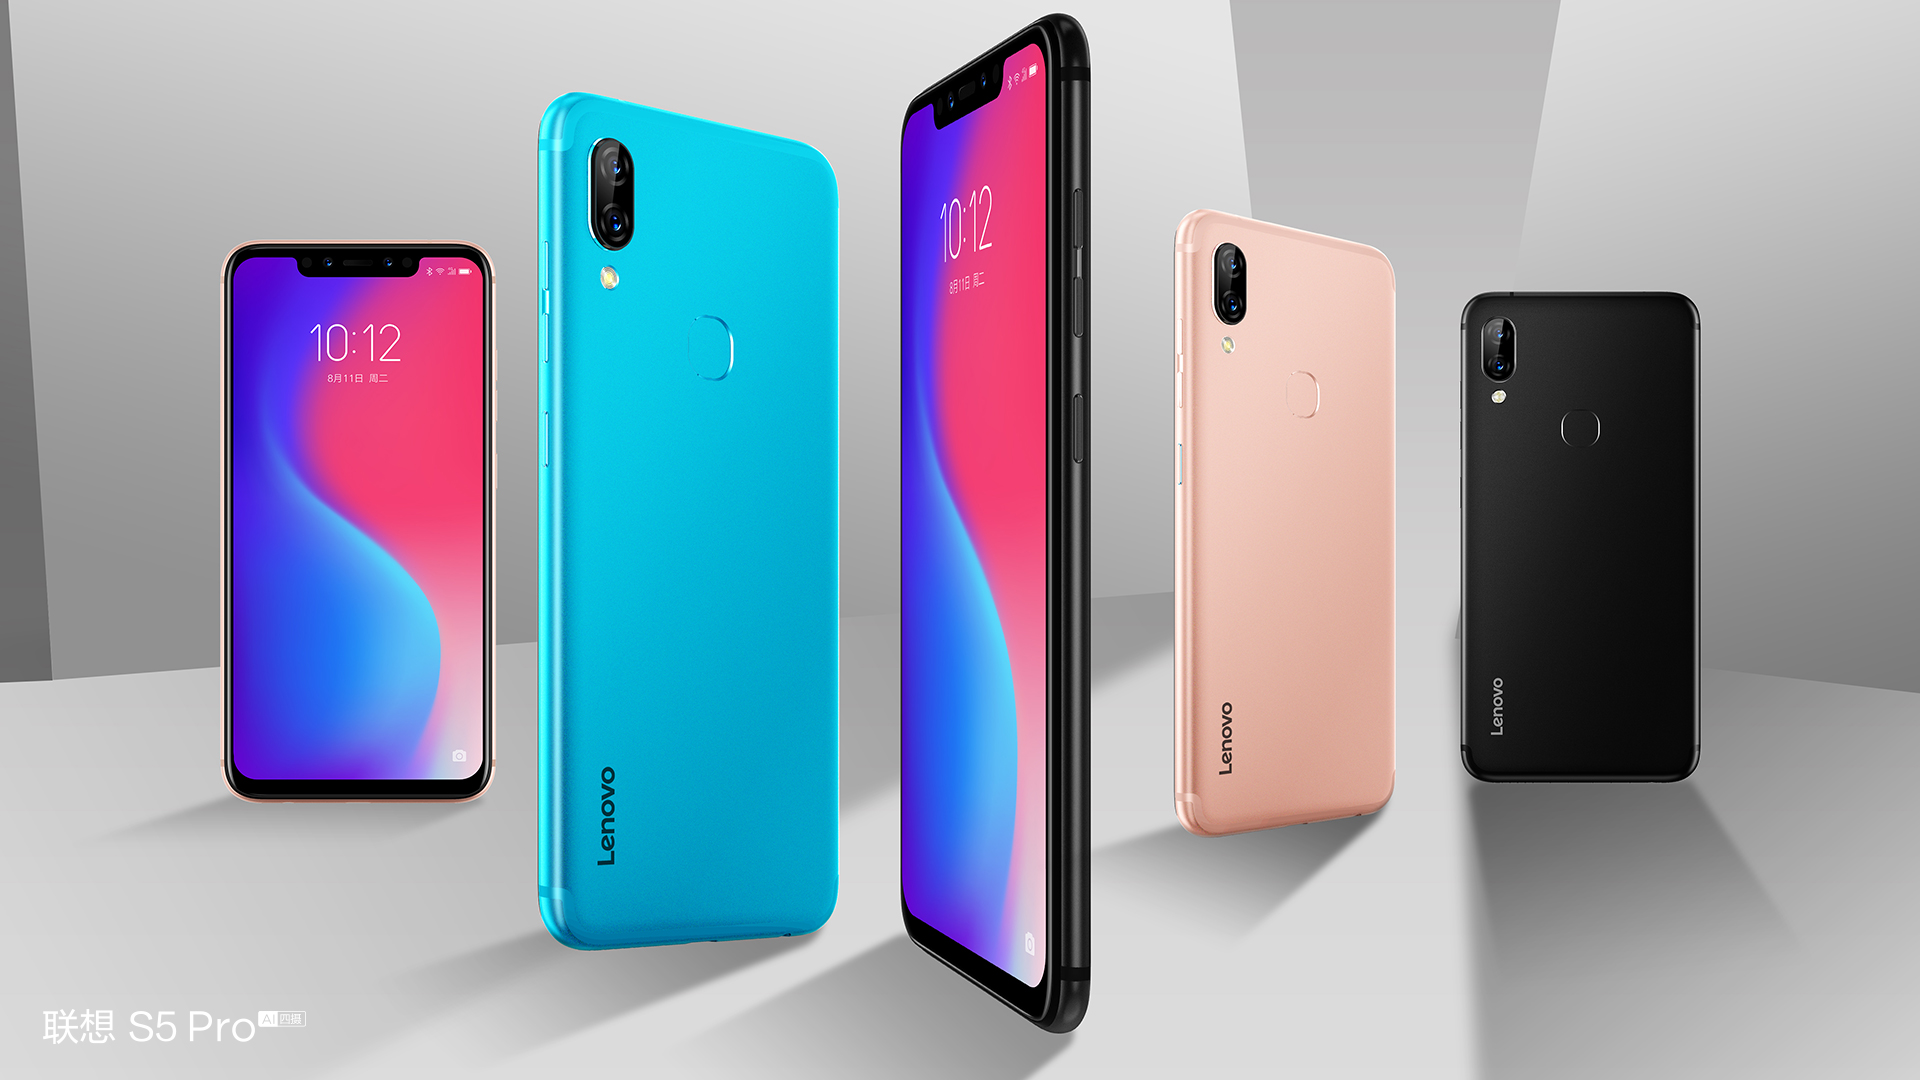 lenovo-smartphones-and-accessories-2020-pricing-and-availability